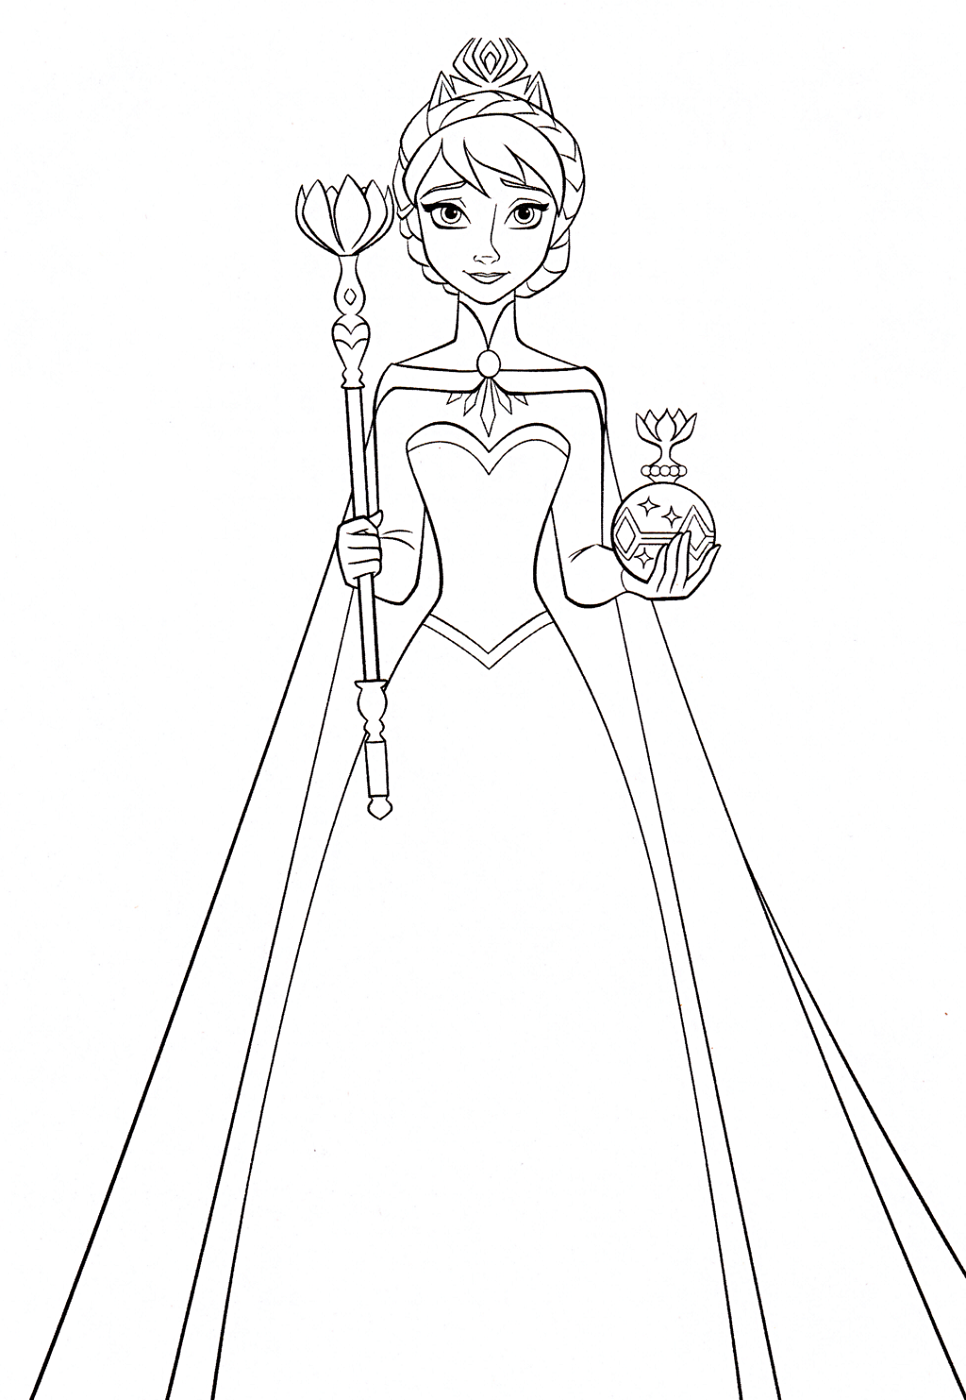 Frozen Worksheets Kids Learning Activity Elsa Coloring Pages Elsa Coloring Disney Coloring Pages